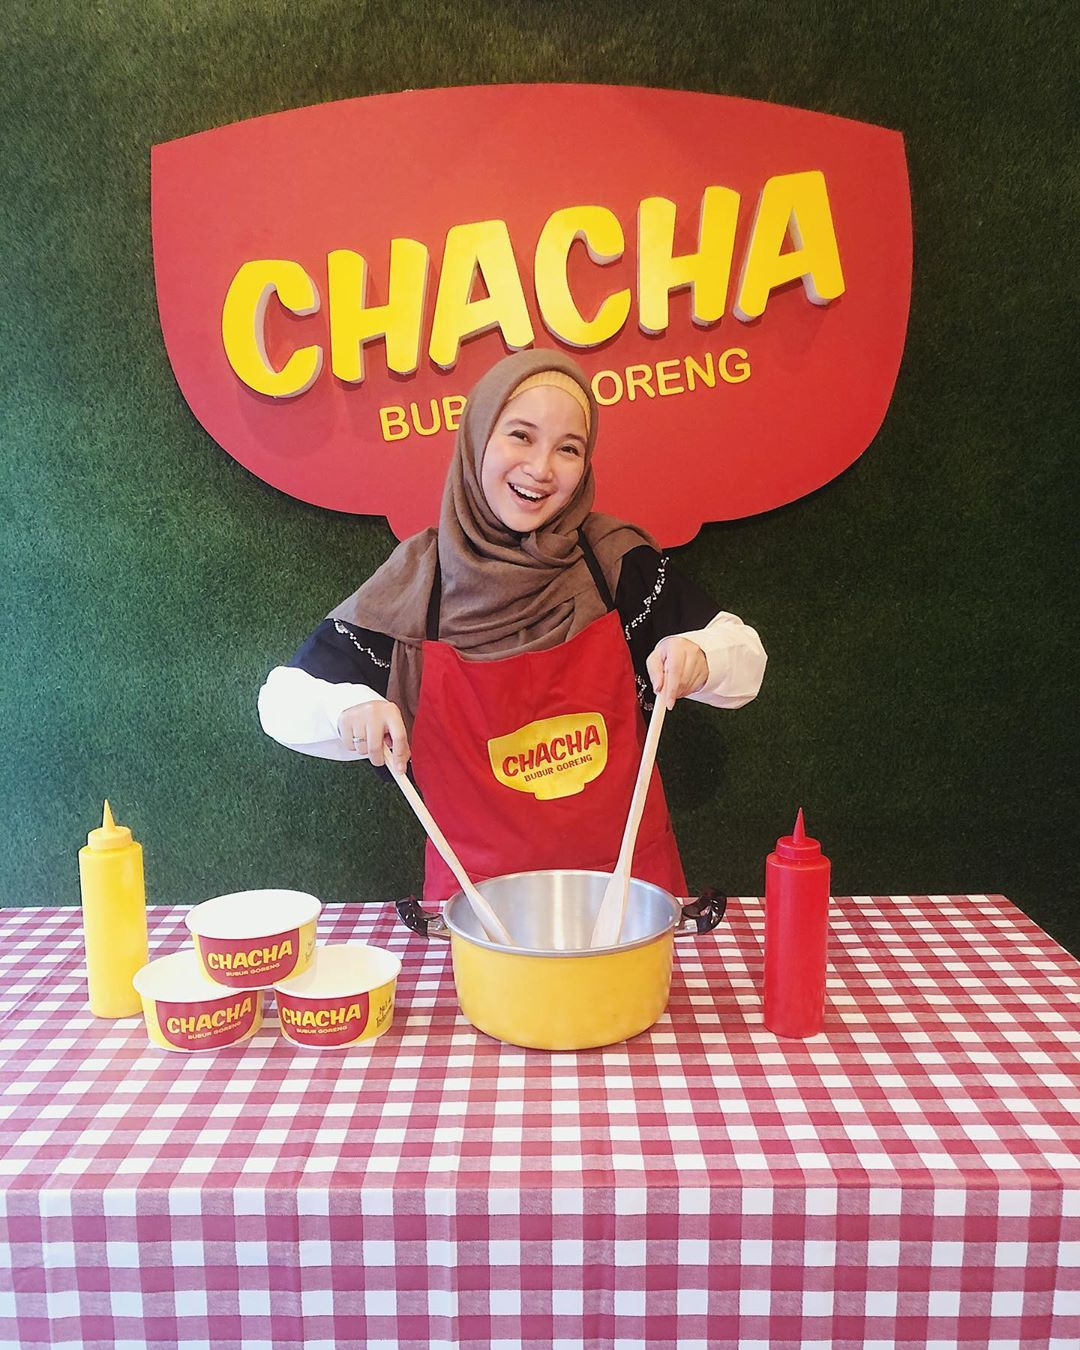 chacha frederica